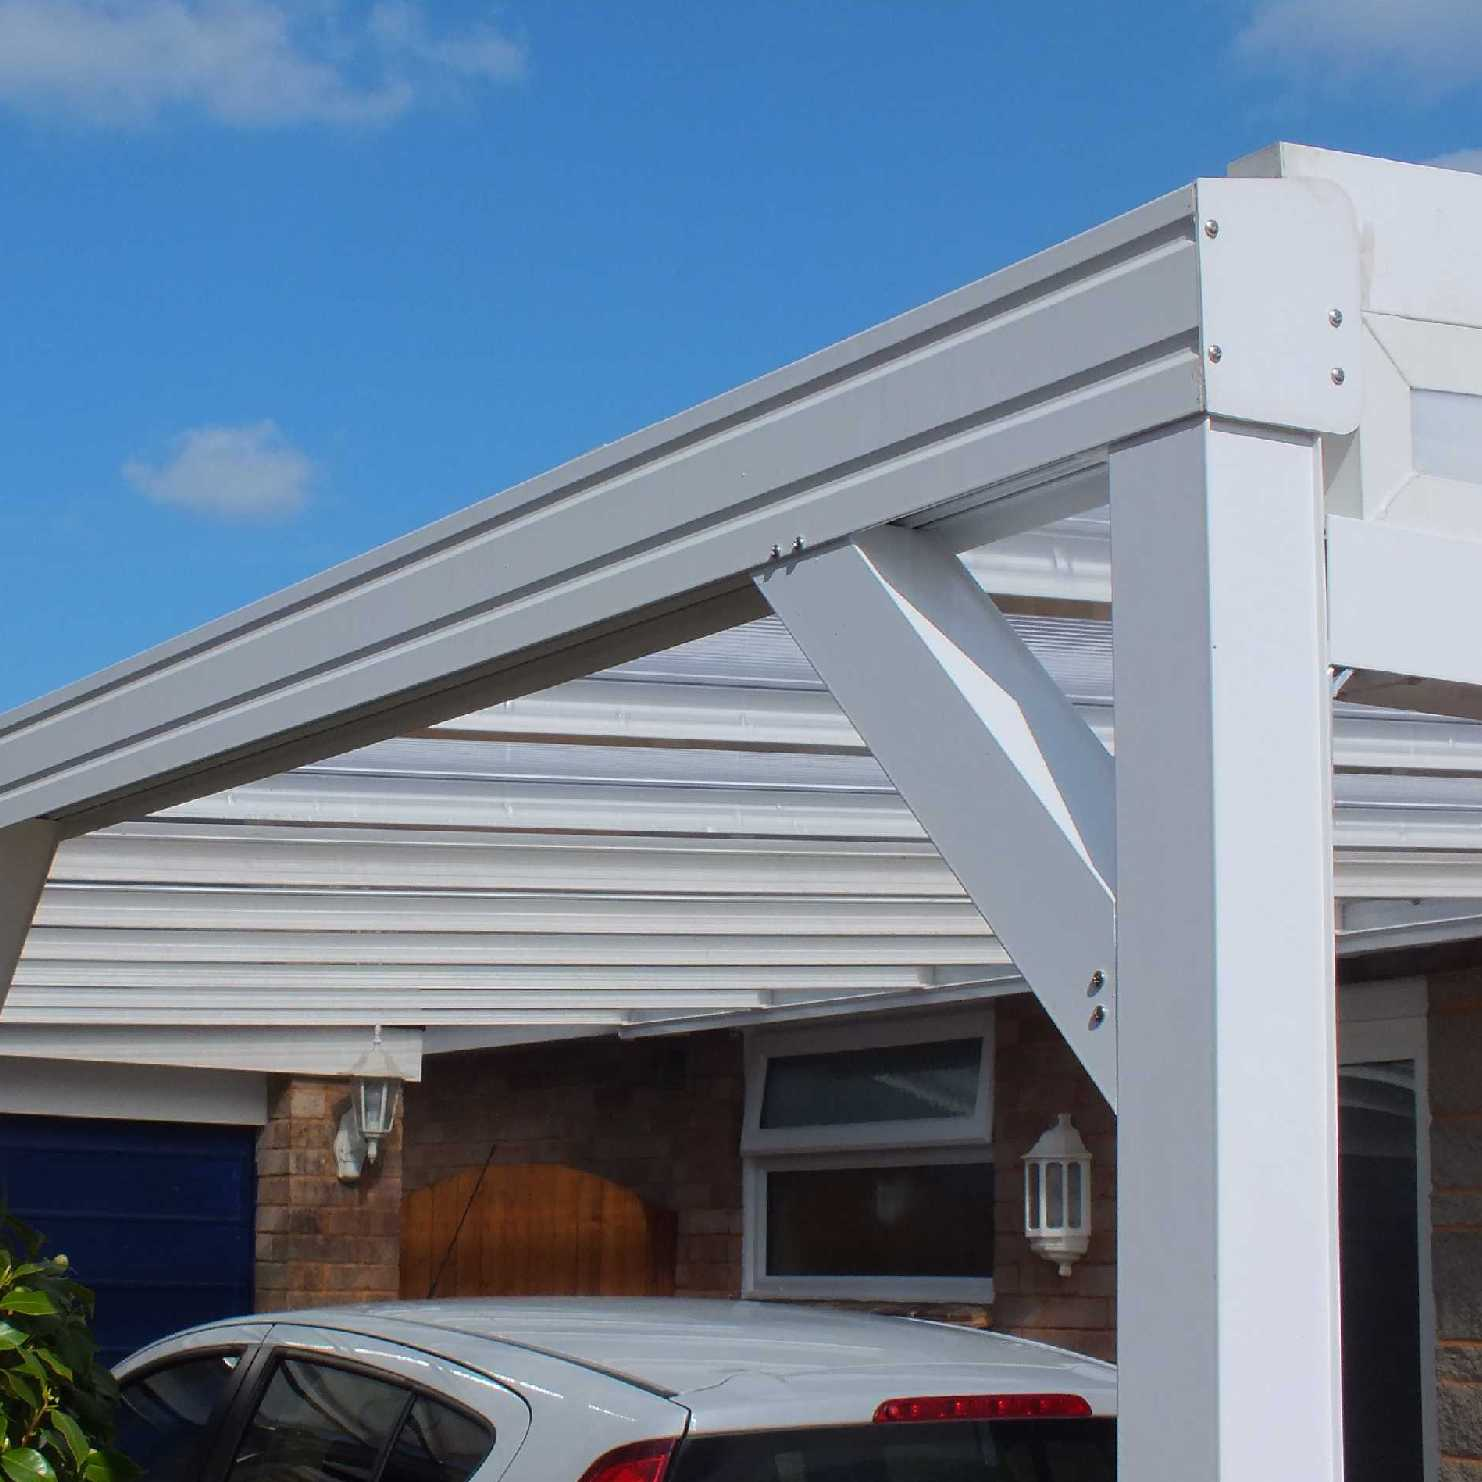 Great deals on Omega Smart Lean-To Canopy with 16mm Polycarbonate Glazing - 3.1m (W) x 4.5m (P), (2) Supporting Posts